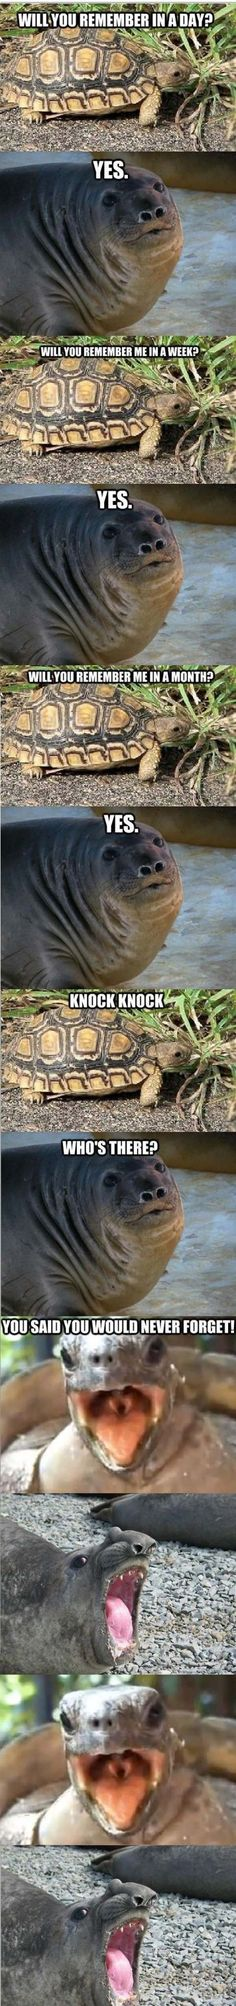 funny animals pictures with captions (56 pict) | Funny Pictures: